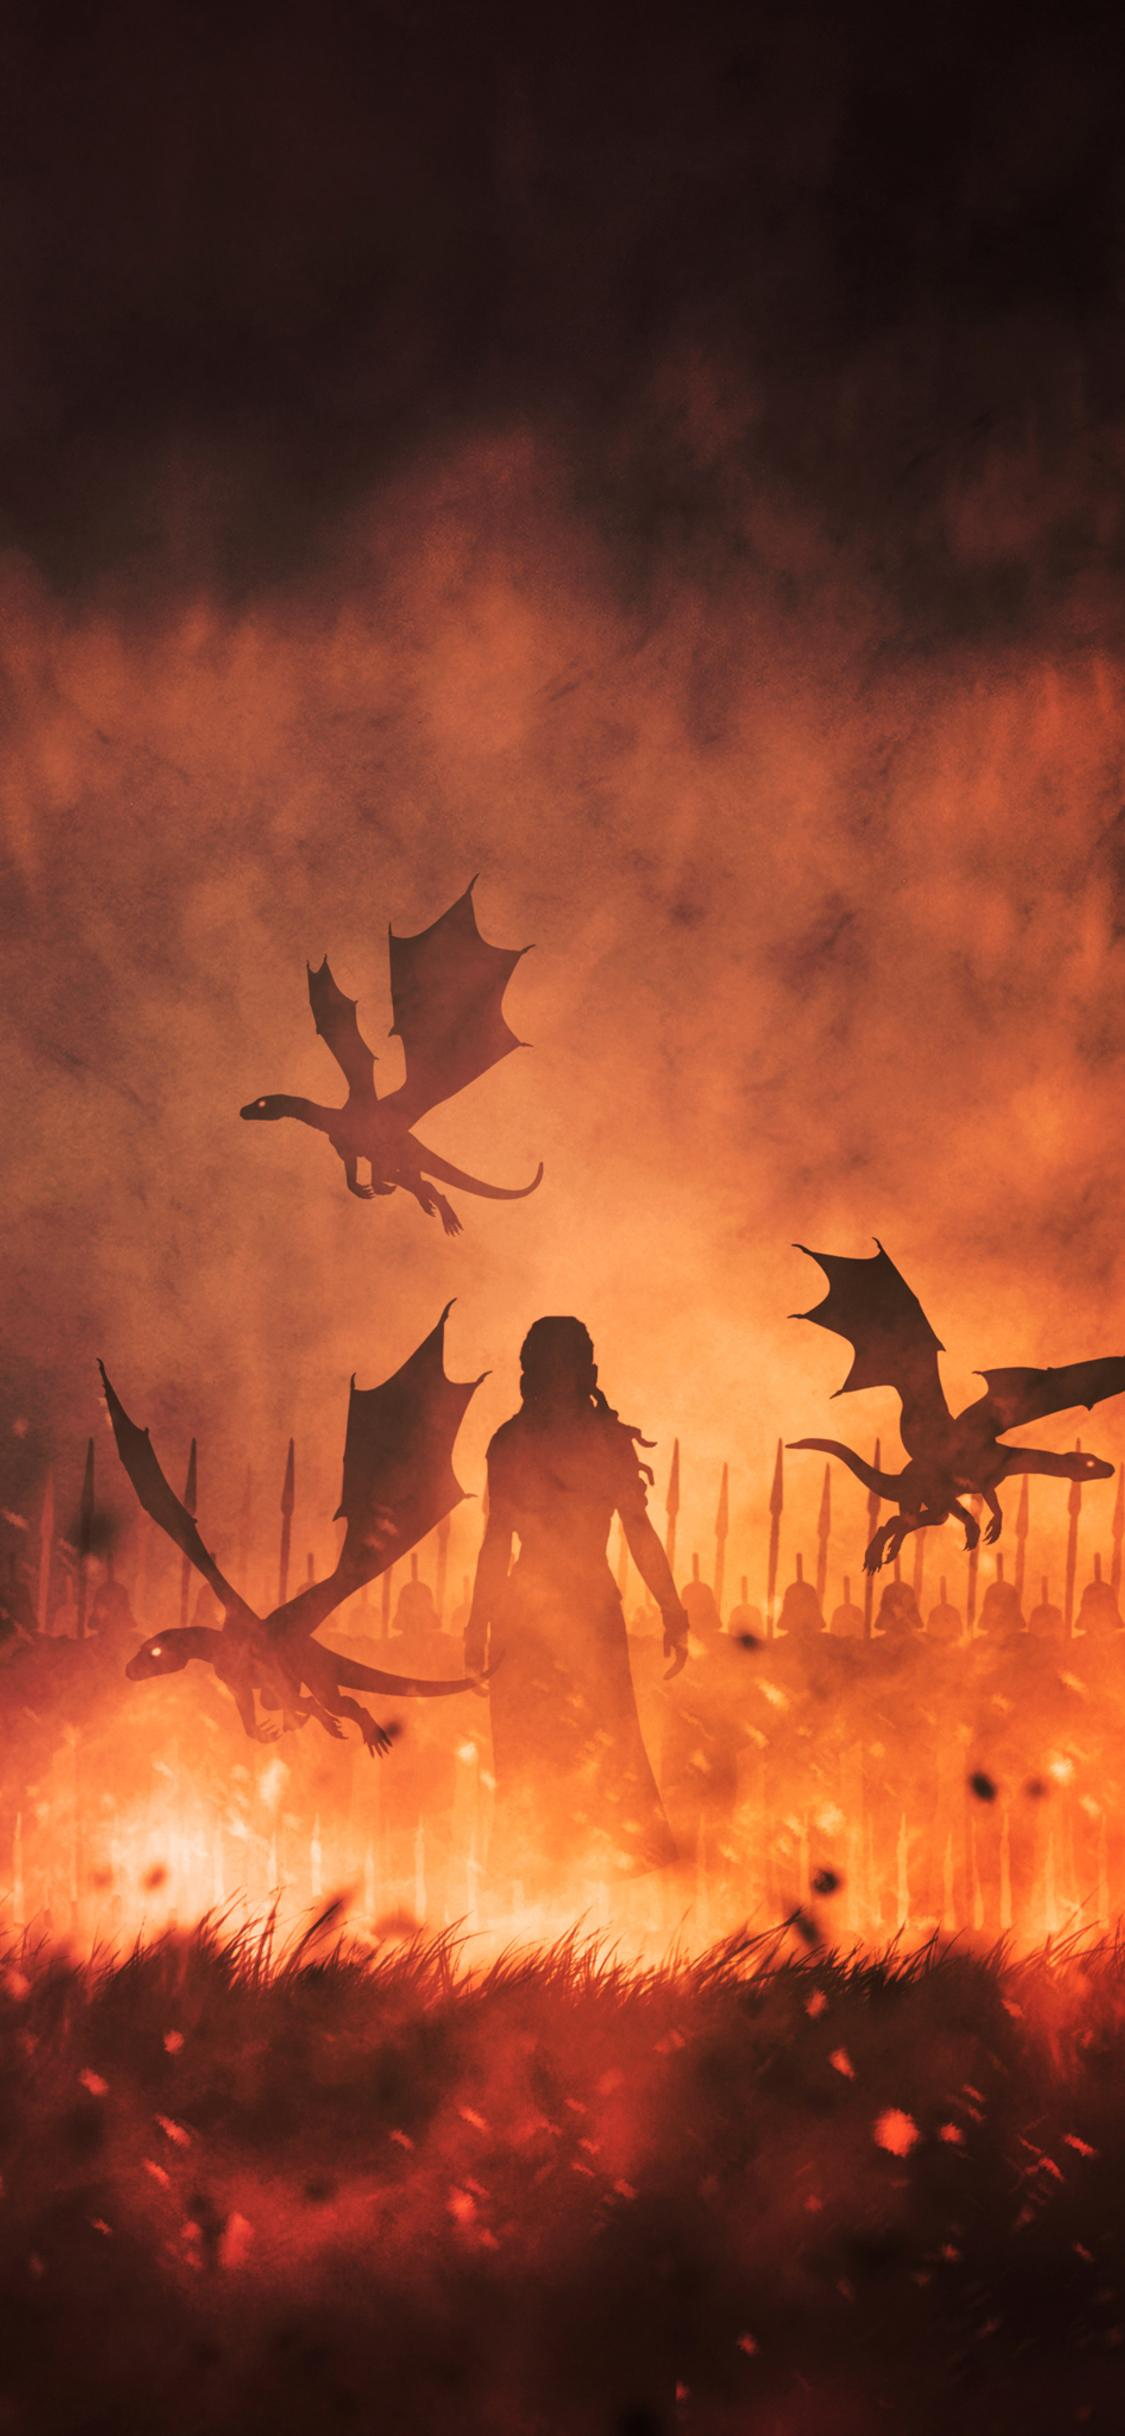 Game Of Thrones Animated Wallpapers - Wallpaper Cave